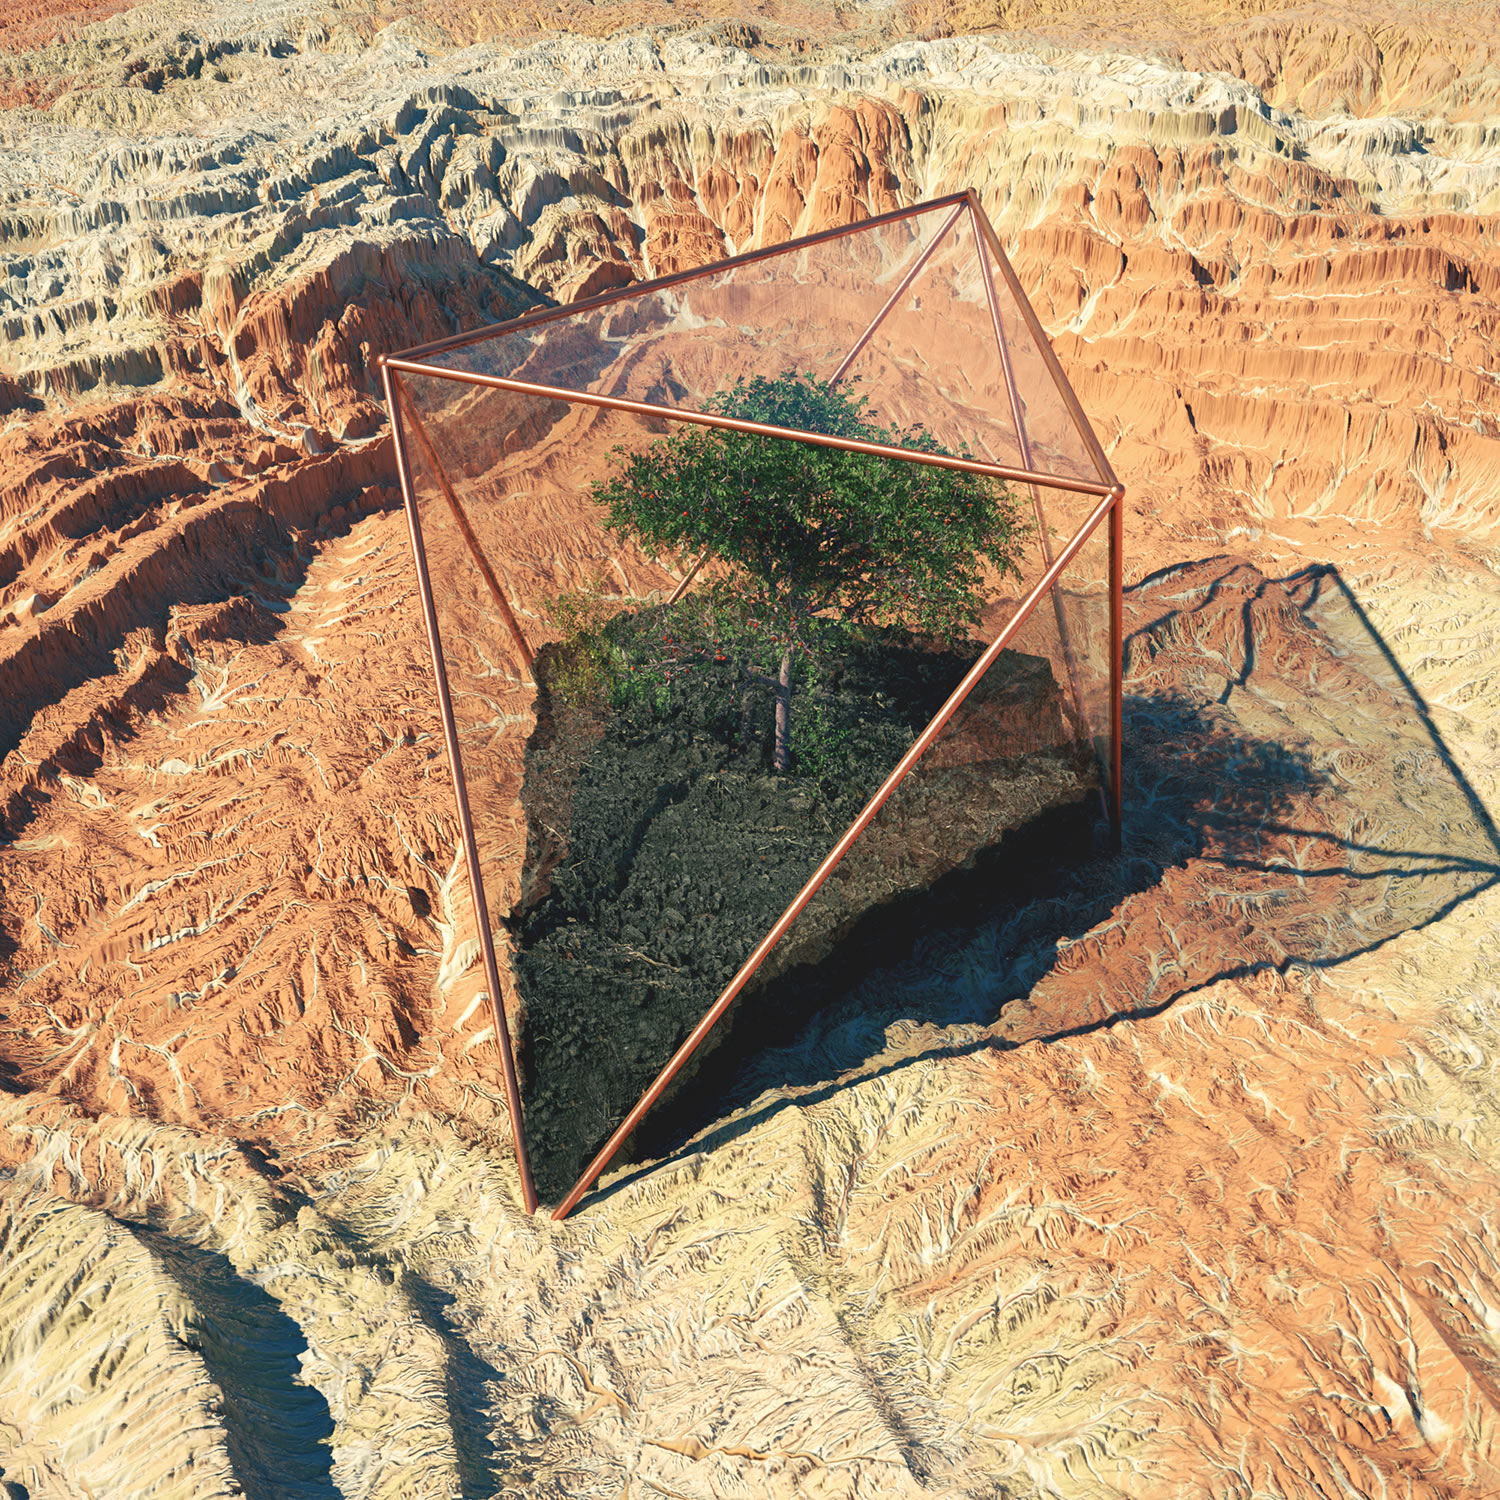 forest in see-through glass case, arizona landscape, digital art